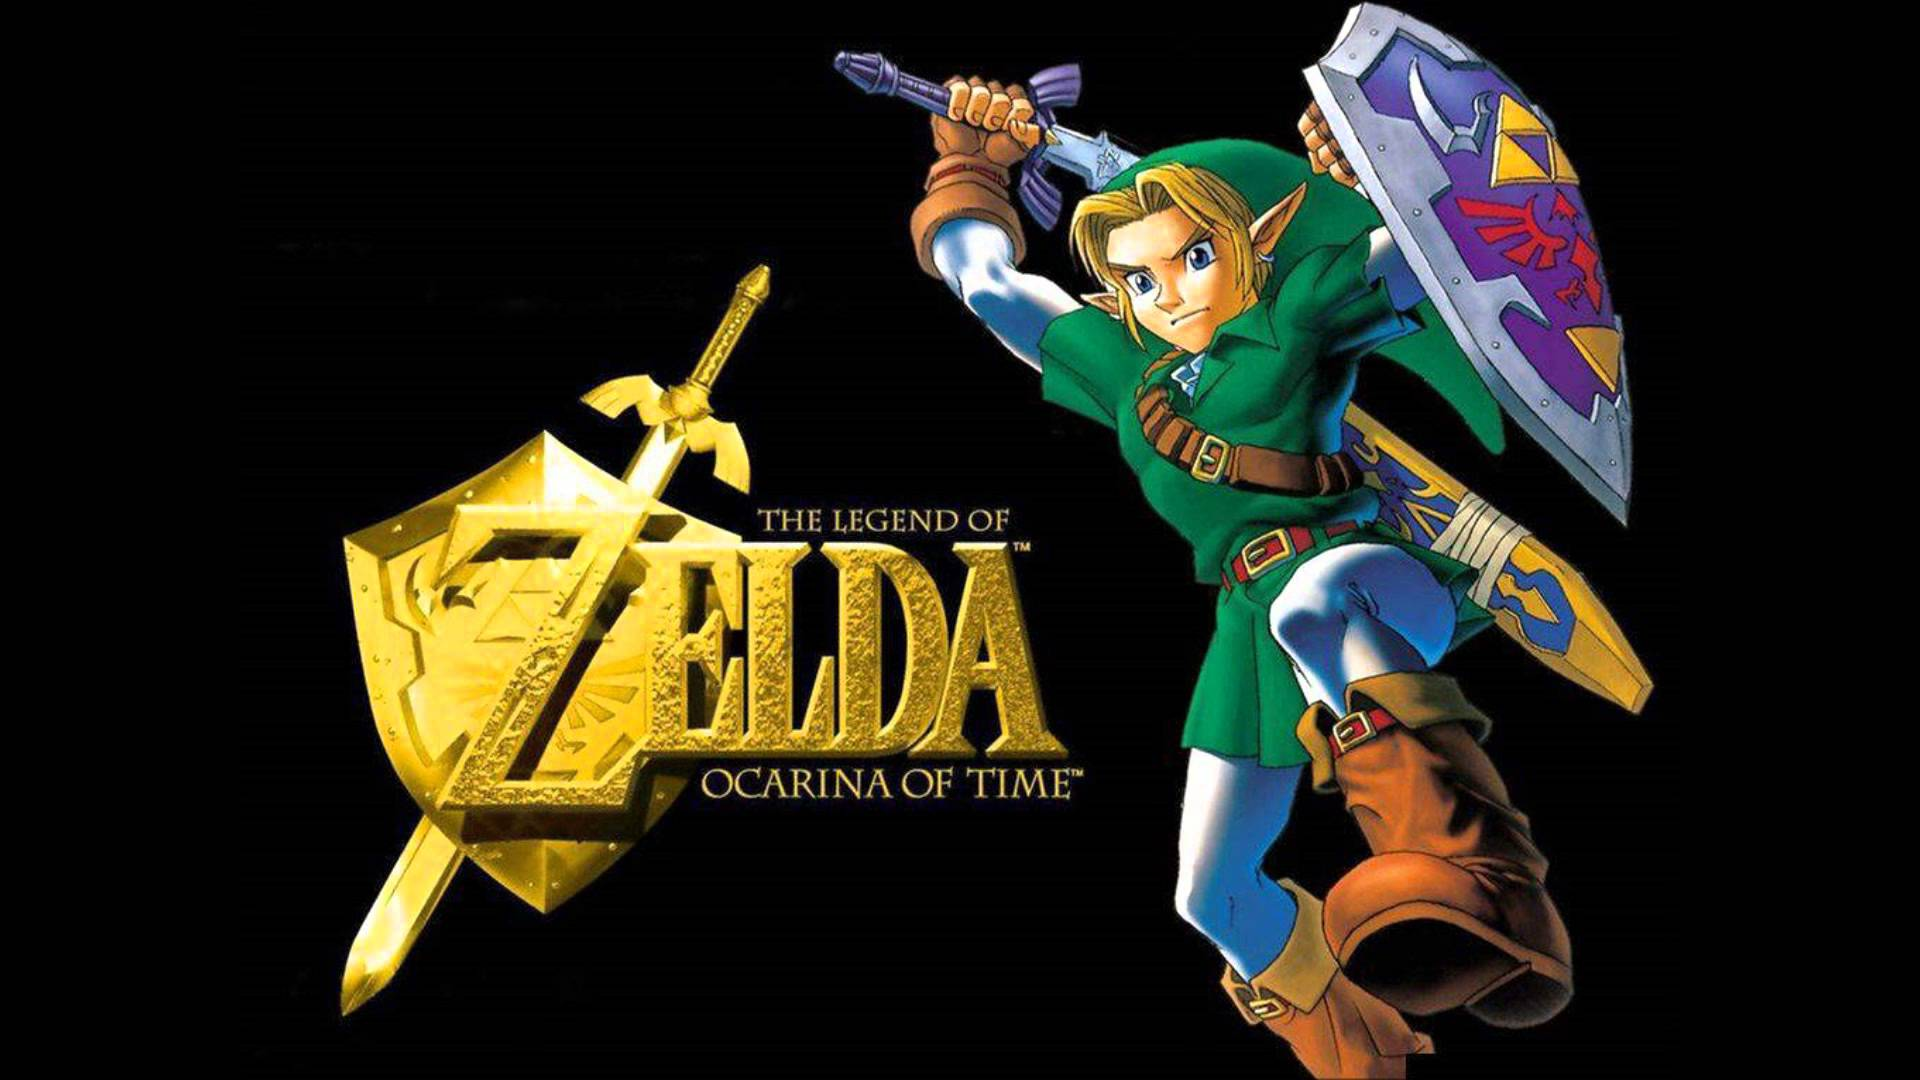 legend of zelda ocarina of time wallpaper 1920x1080